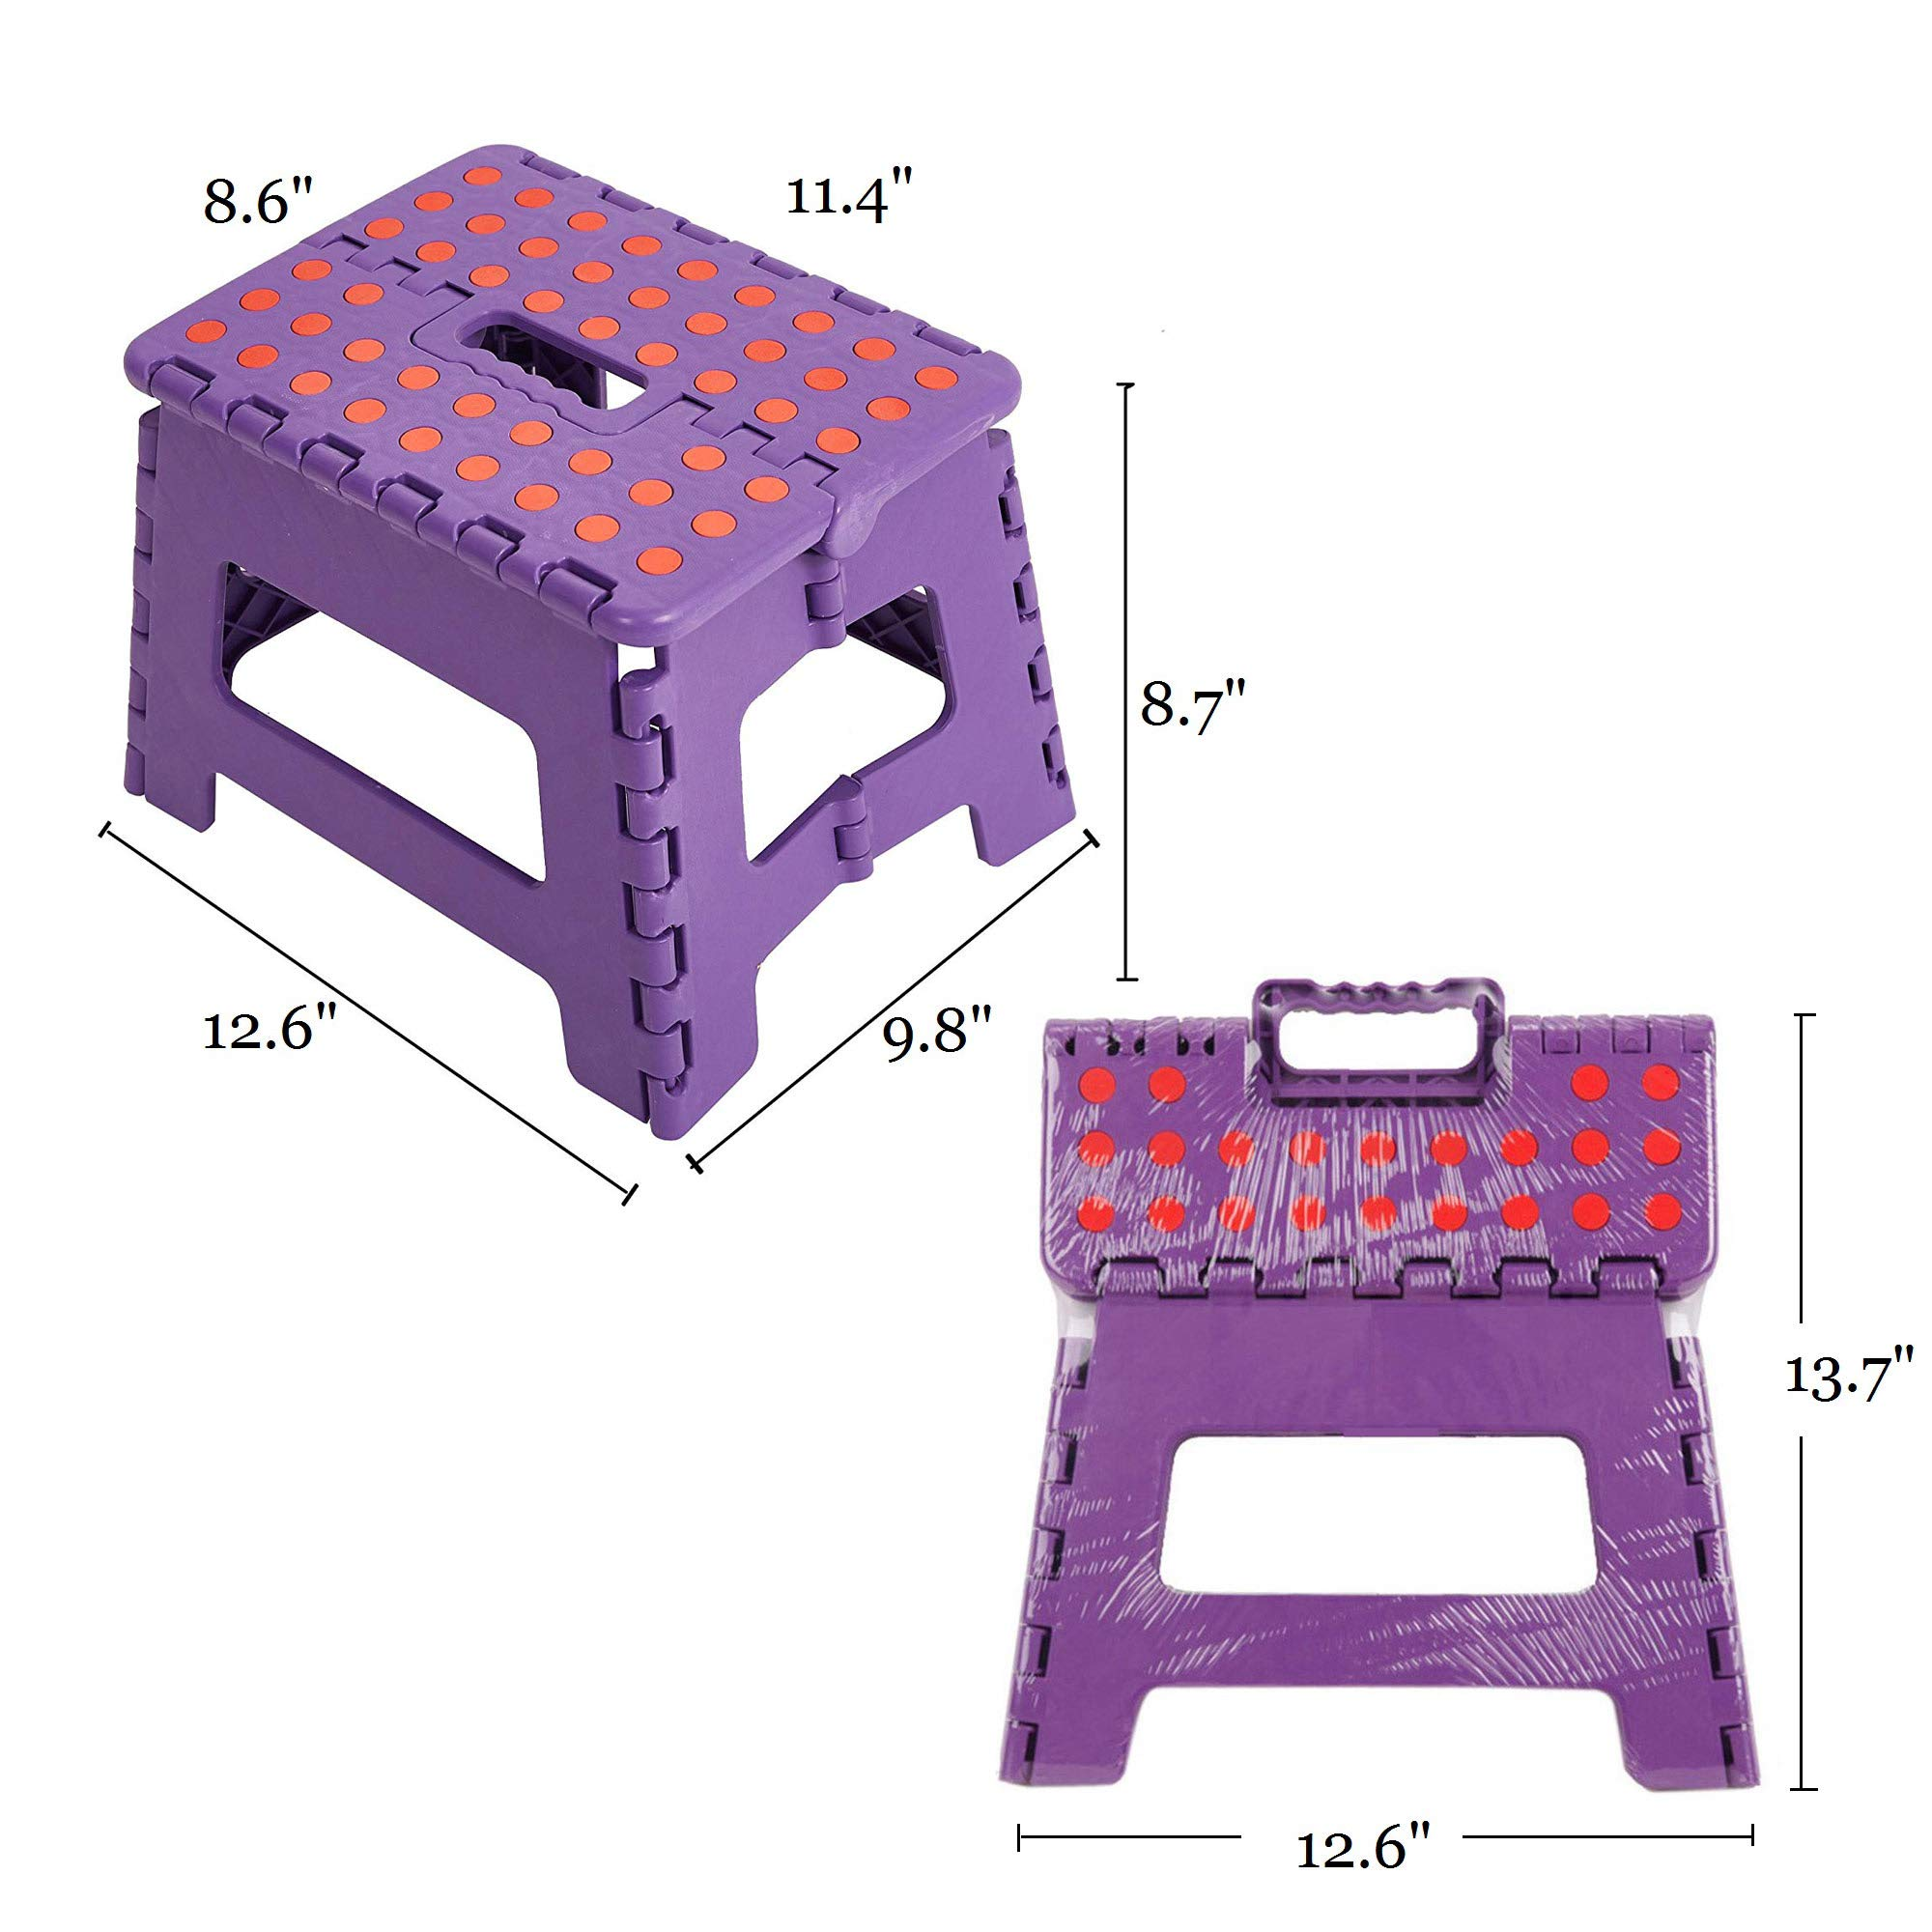 Bathroom Garden Dporticus Super Strong Folding Step Stool with Handle 300 LB Capacity for Adults Toddlers and Kids Kitchen